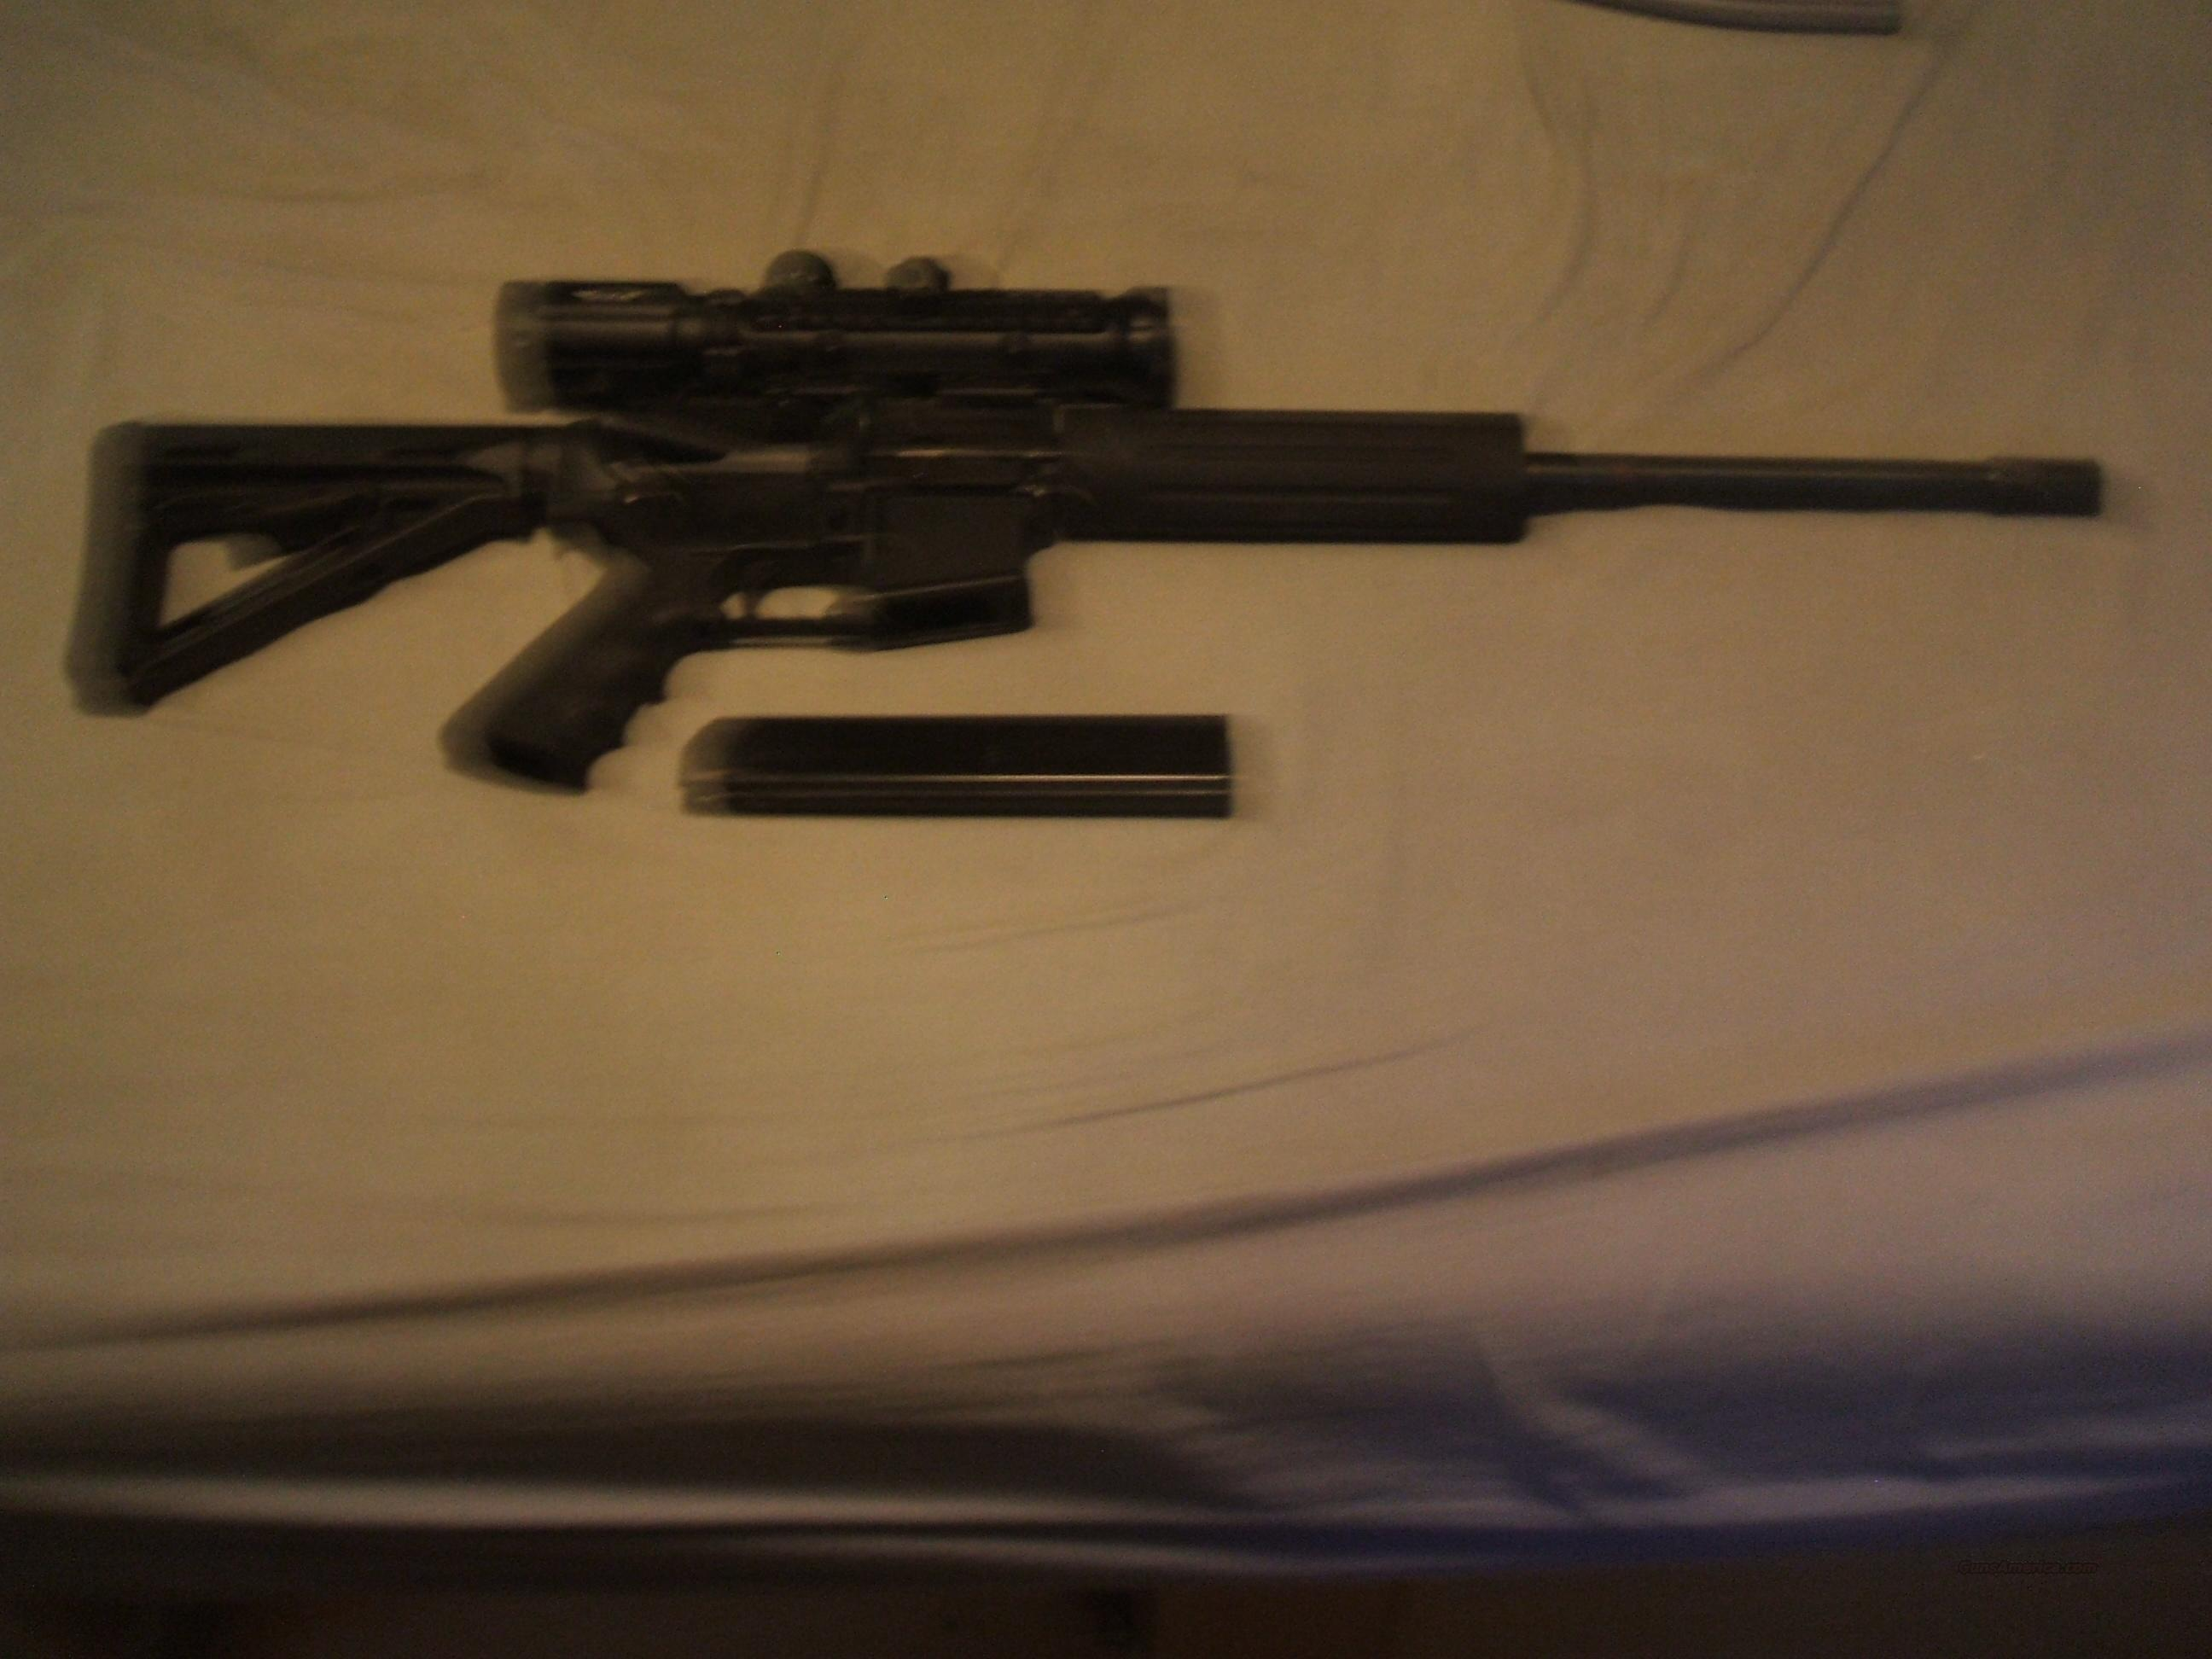 CMMG AR 15 9mm  Guns > Rifles > AR-15 Rifles - Small Manufacturers > Complete Rifle